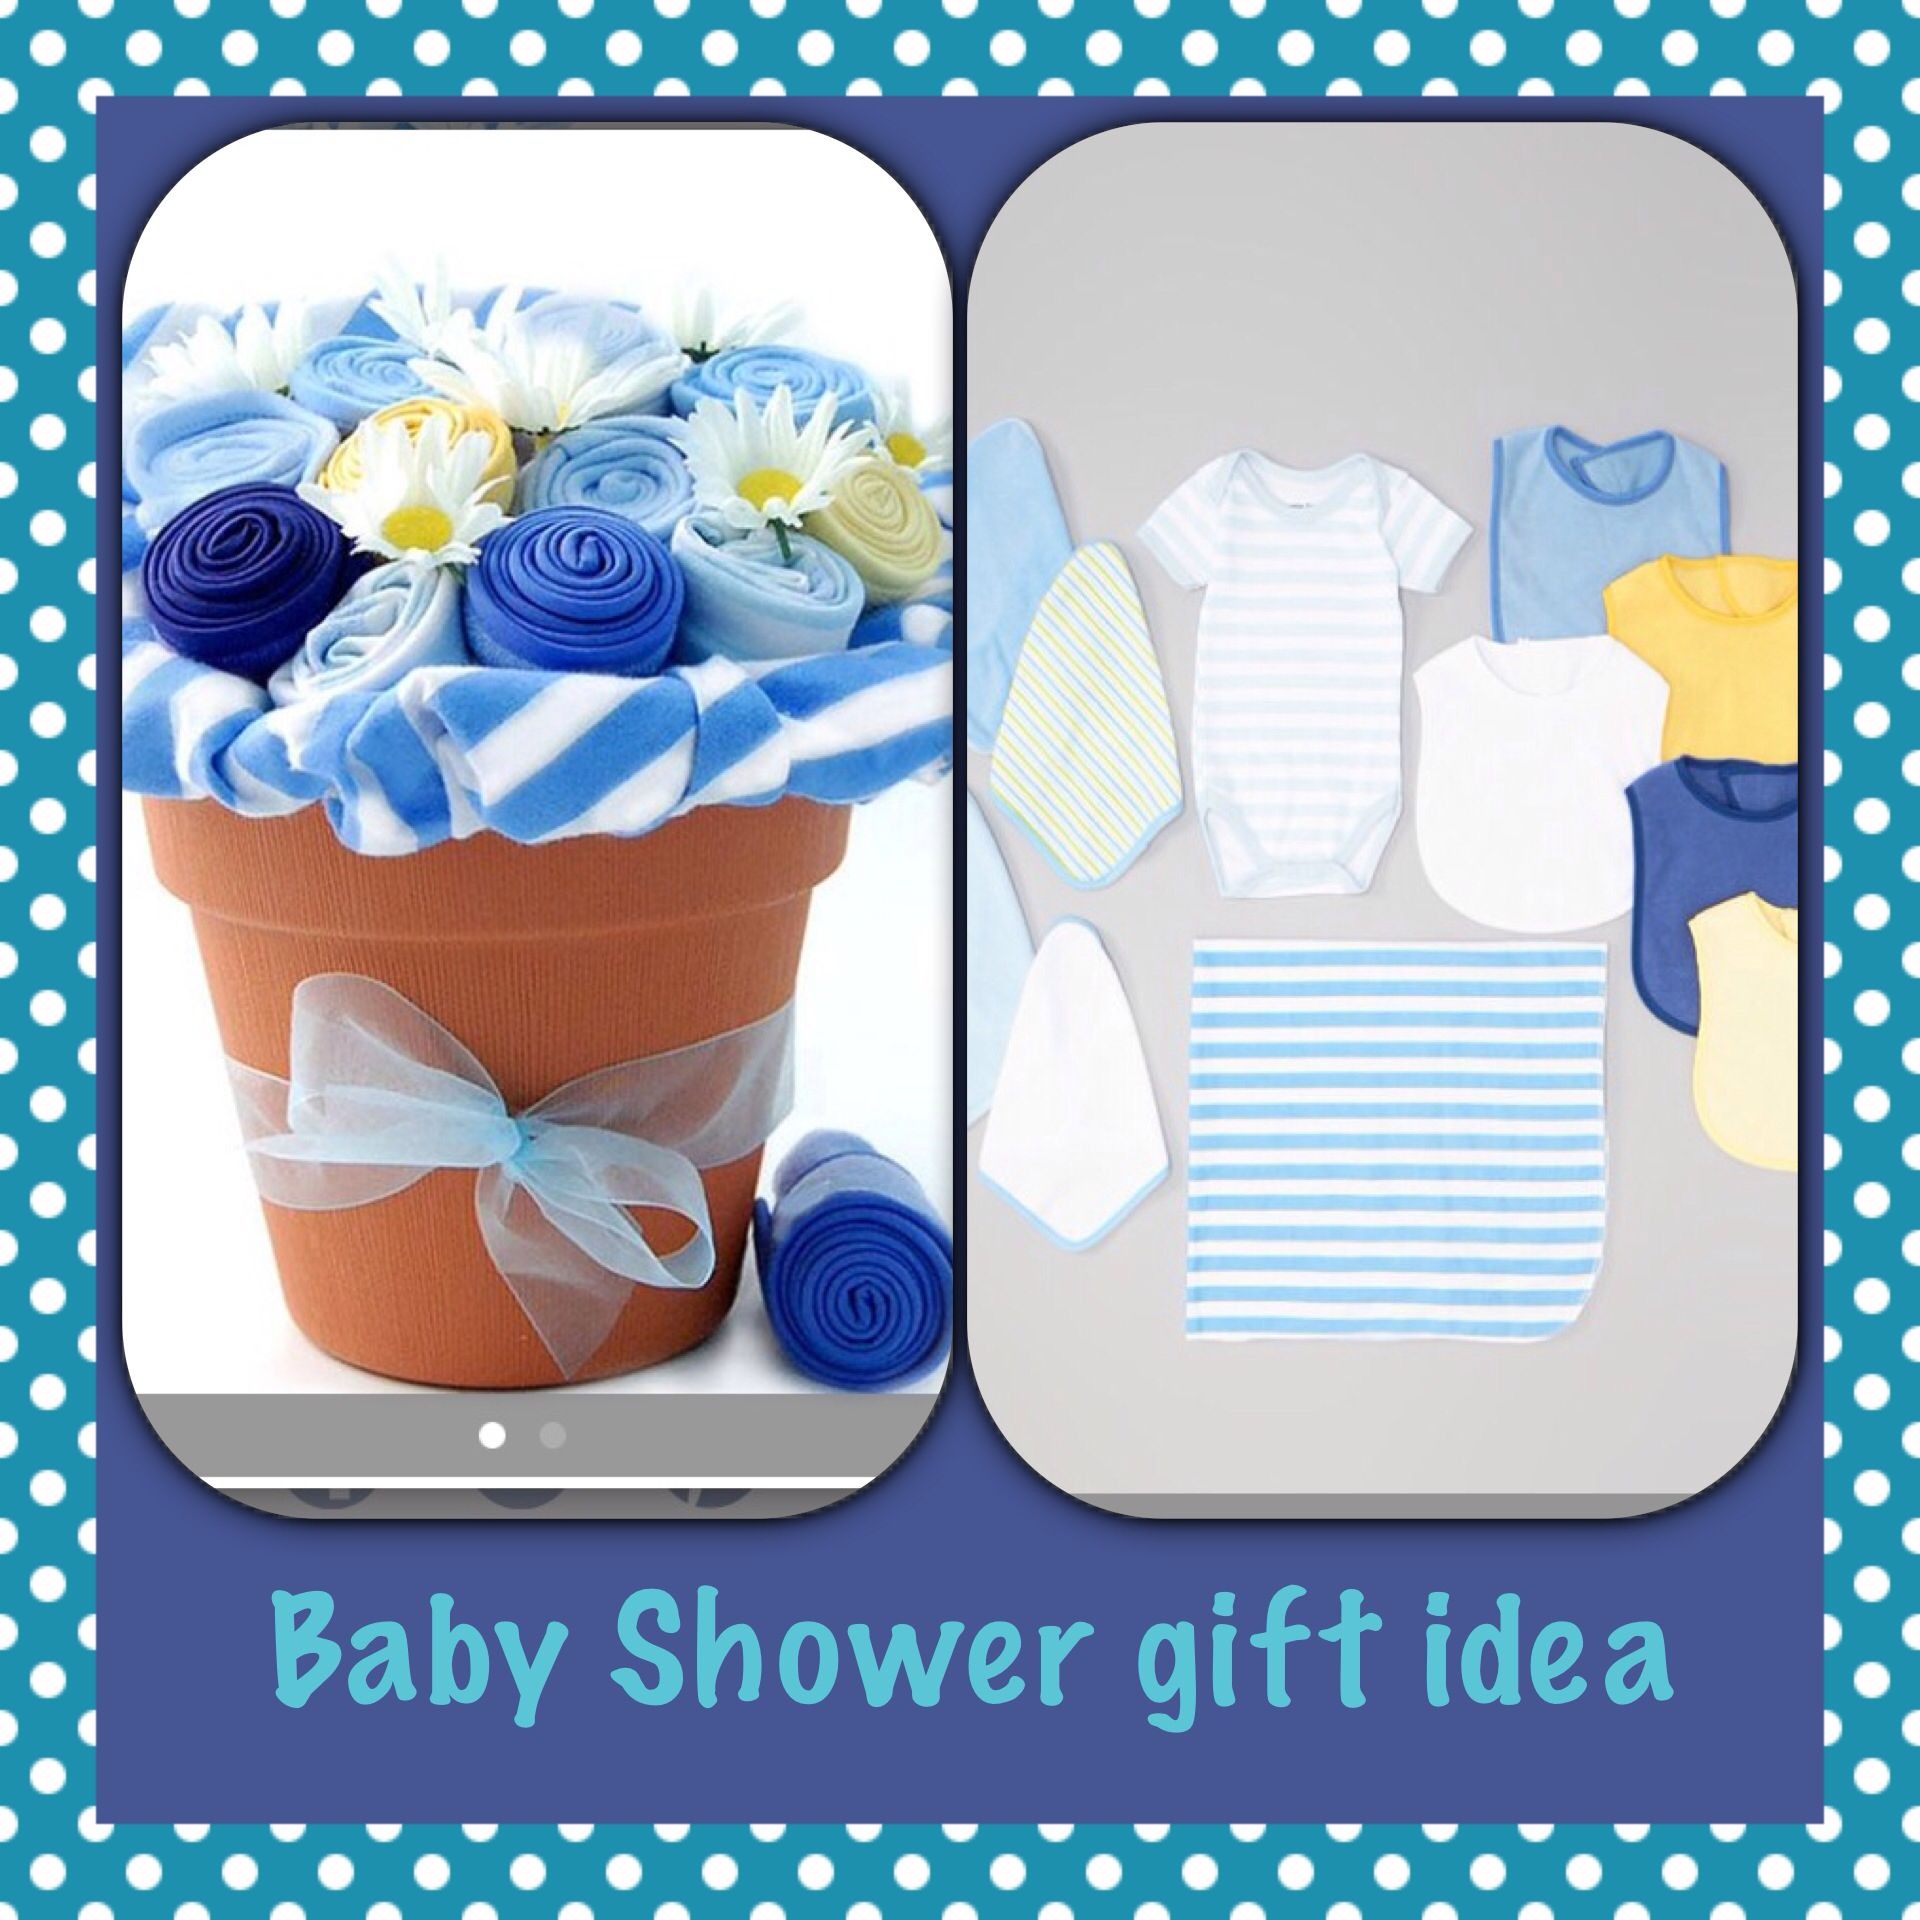 Good Baby Shower Gift: Great Baby Boy Shower Gift Idea